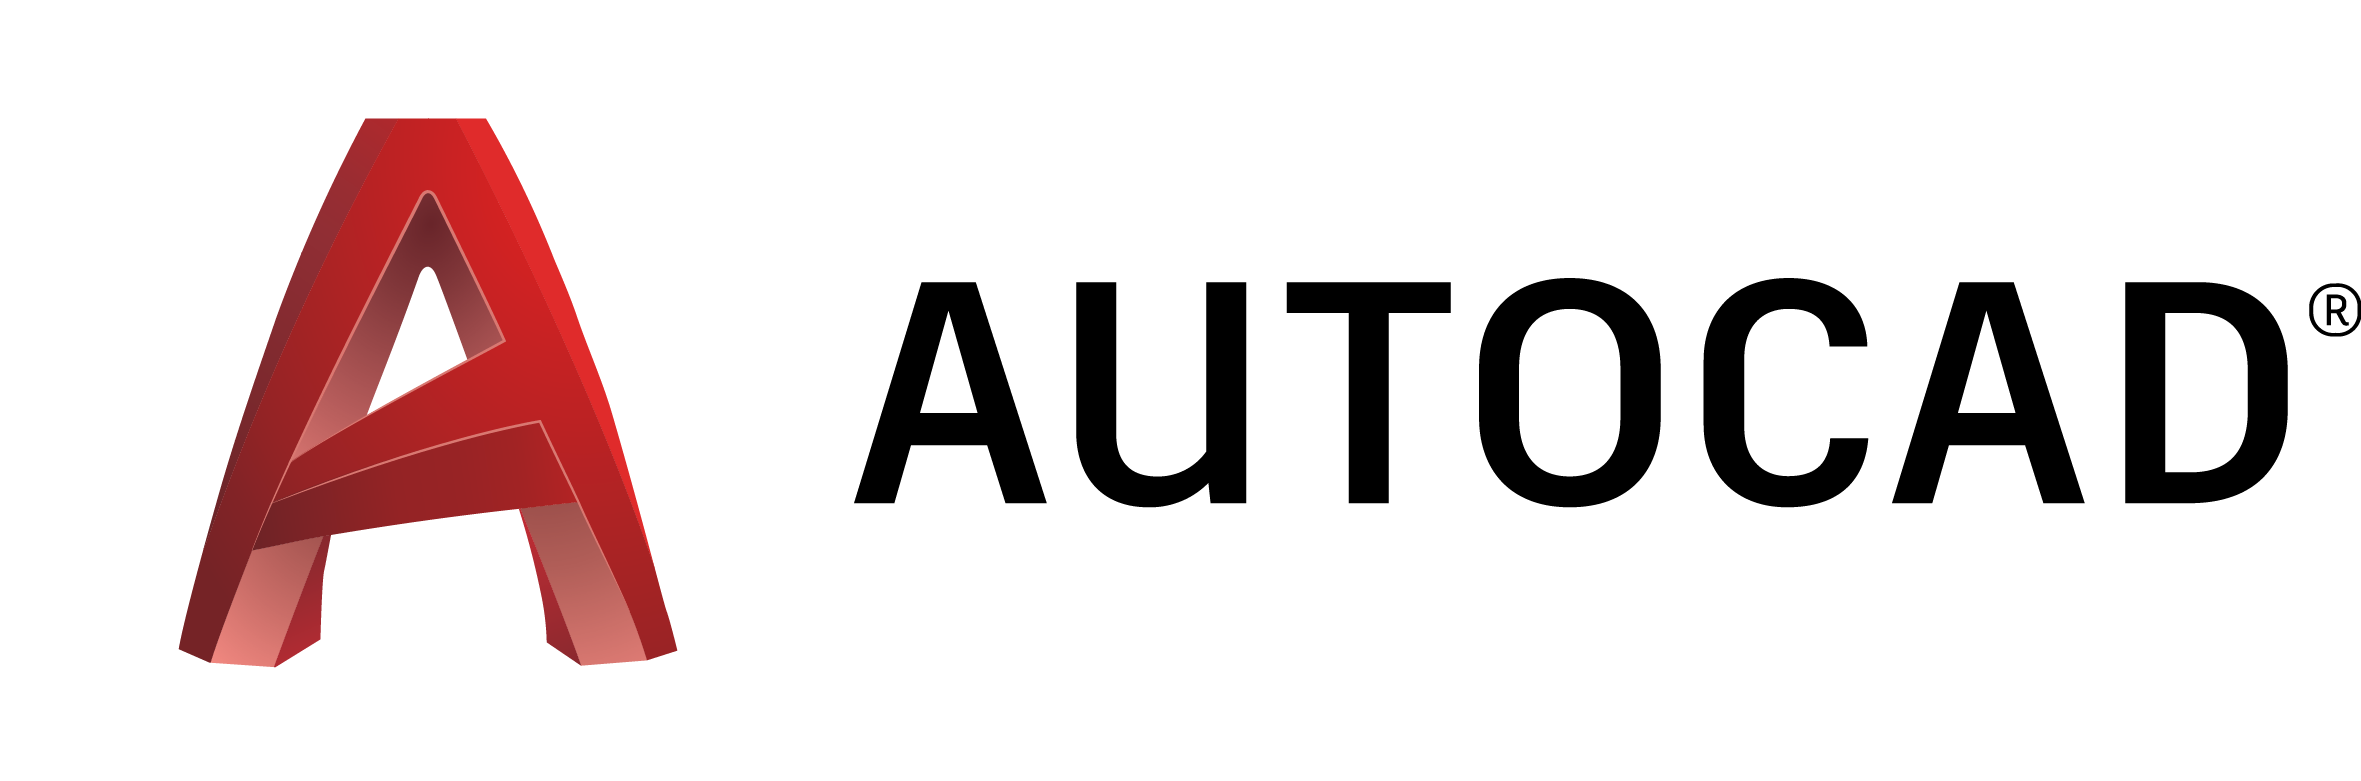 Autocad Logo [Autodesk] Vector EPS Free Download, Logo, Icons.